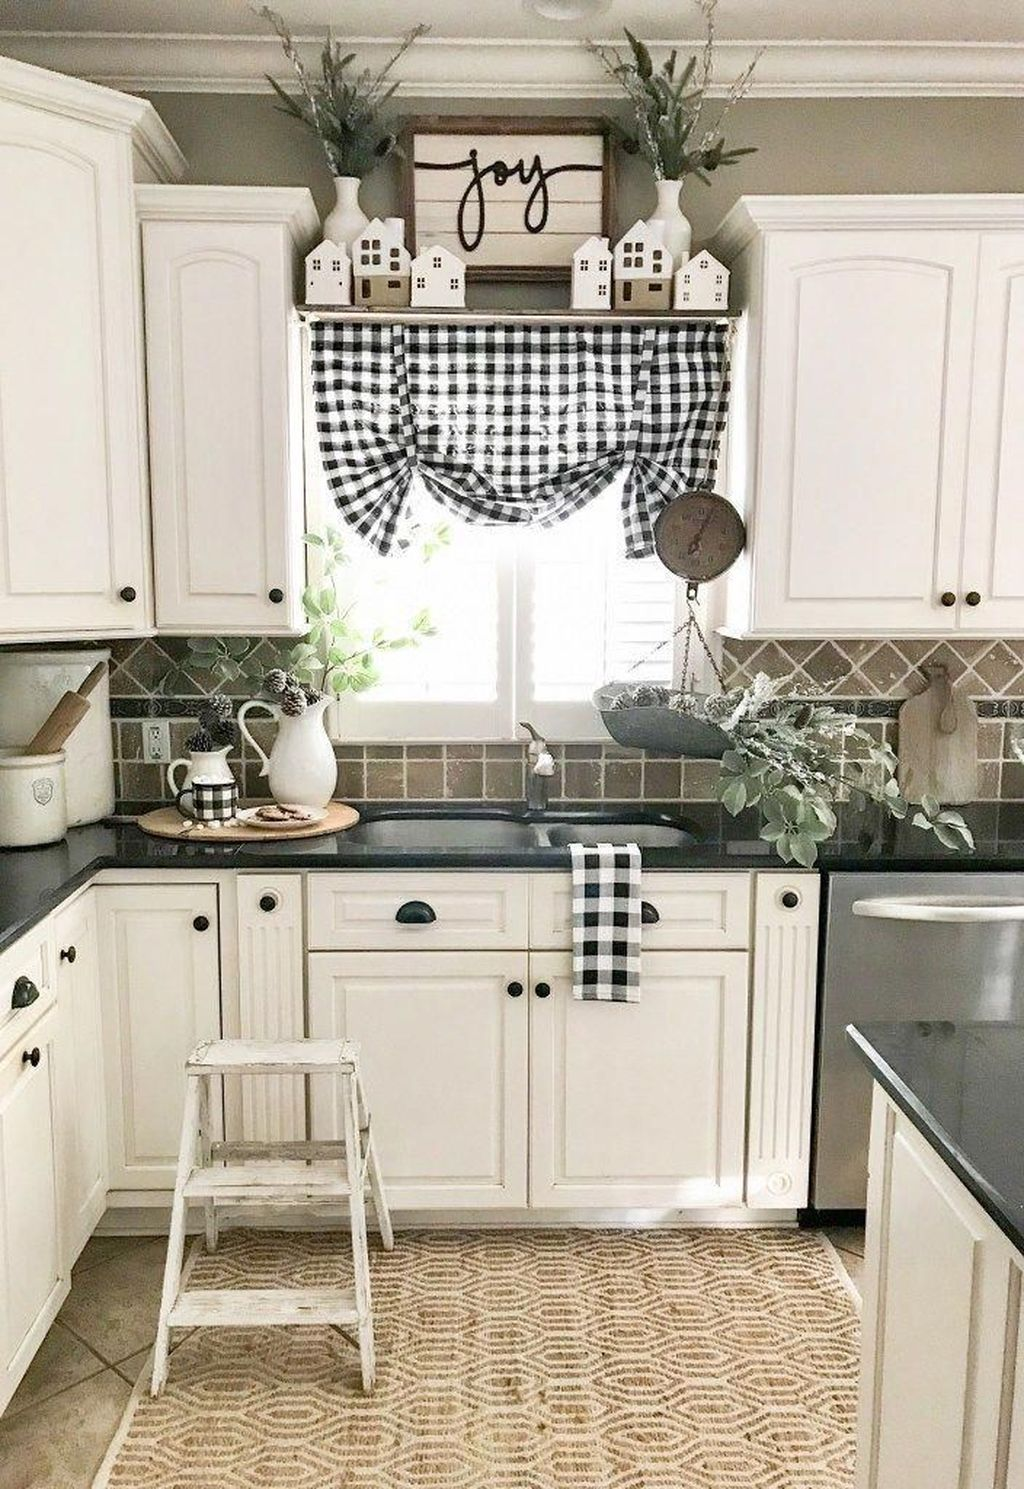 Inspiring Country Kitchen Decor Ideas You Should Copy 01